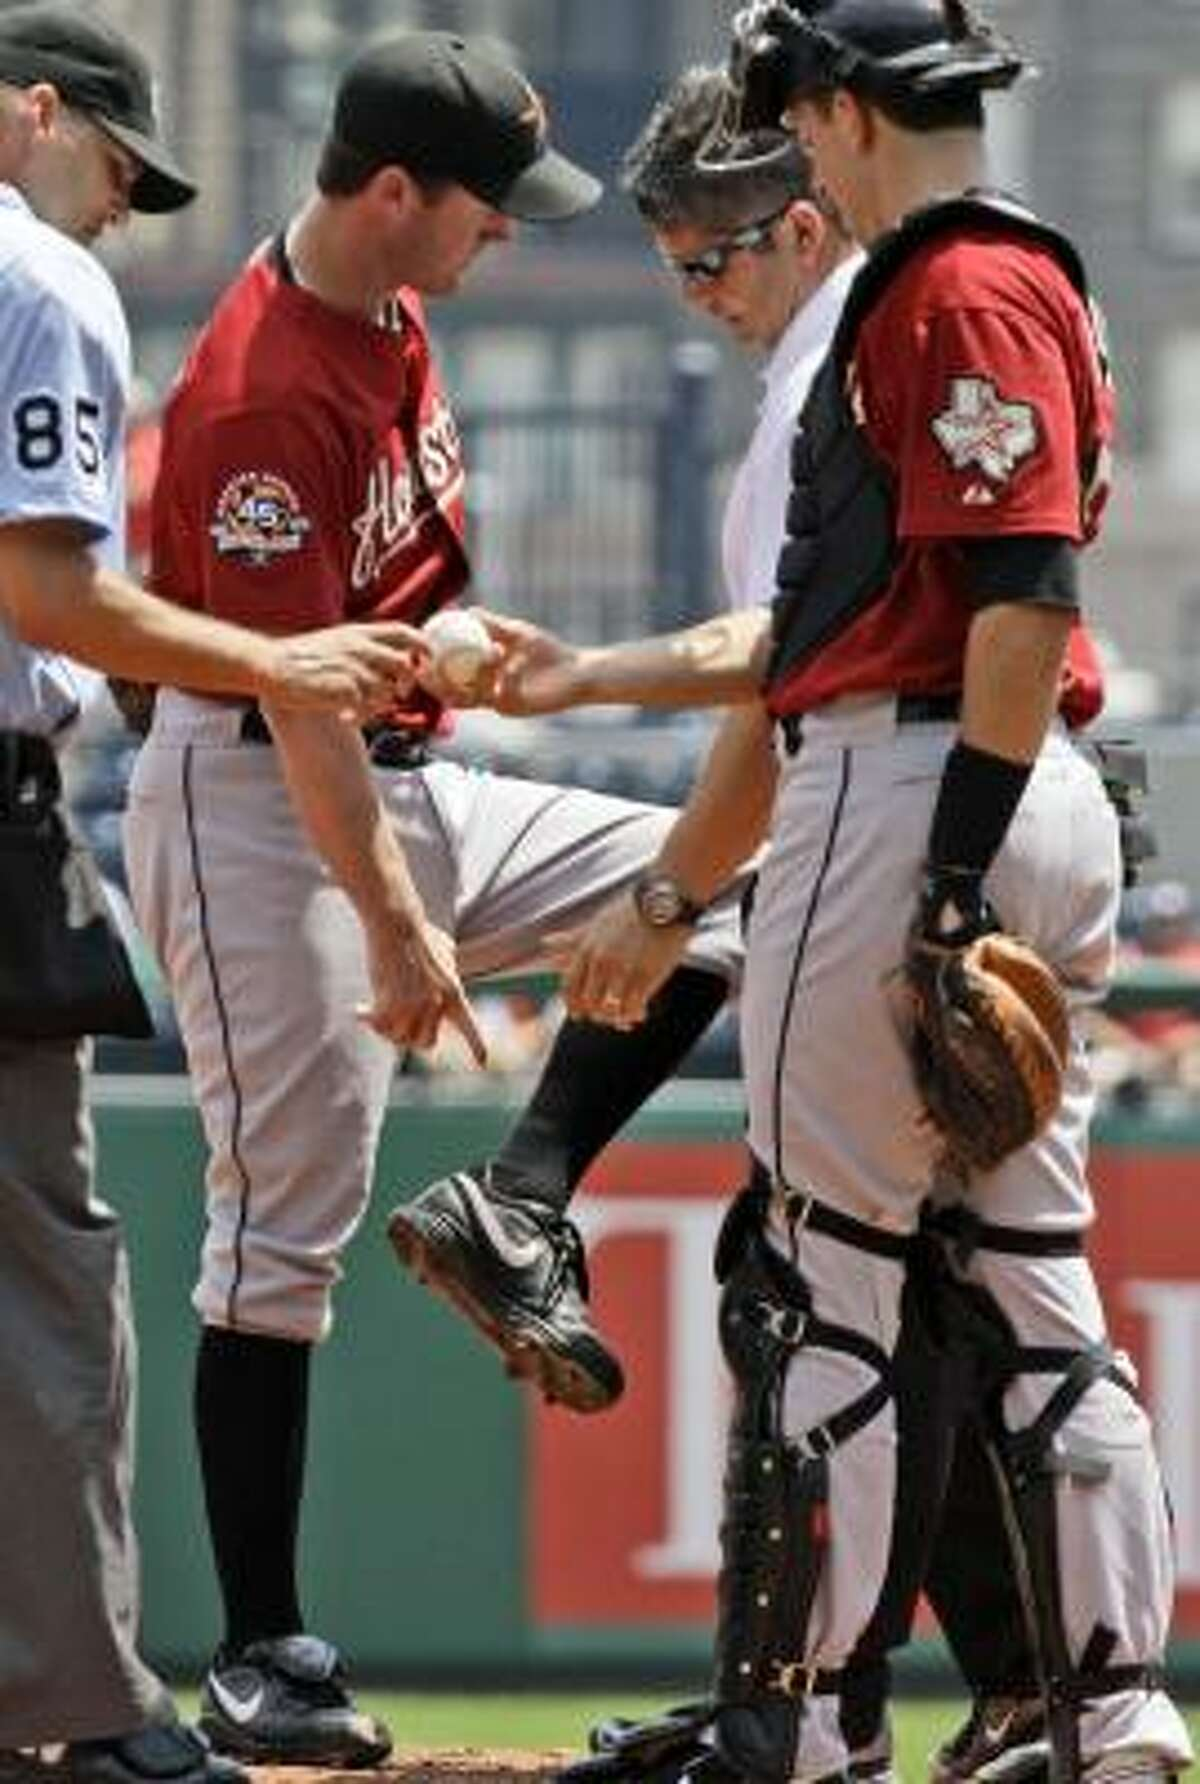 Roy Oswalt points to where a ball hit by Pittsburgh's Pedro Alvarez hit him on the ankle.